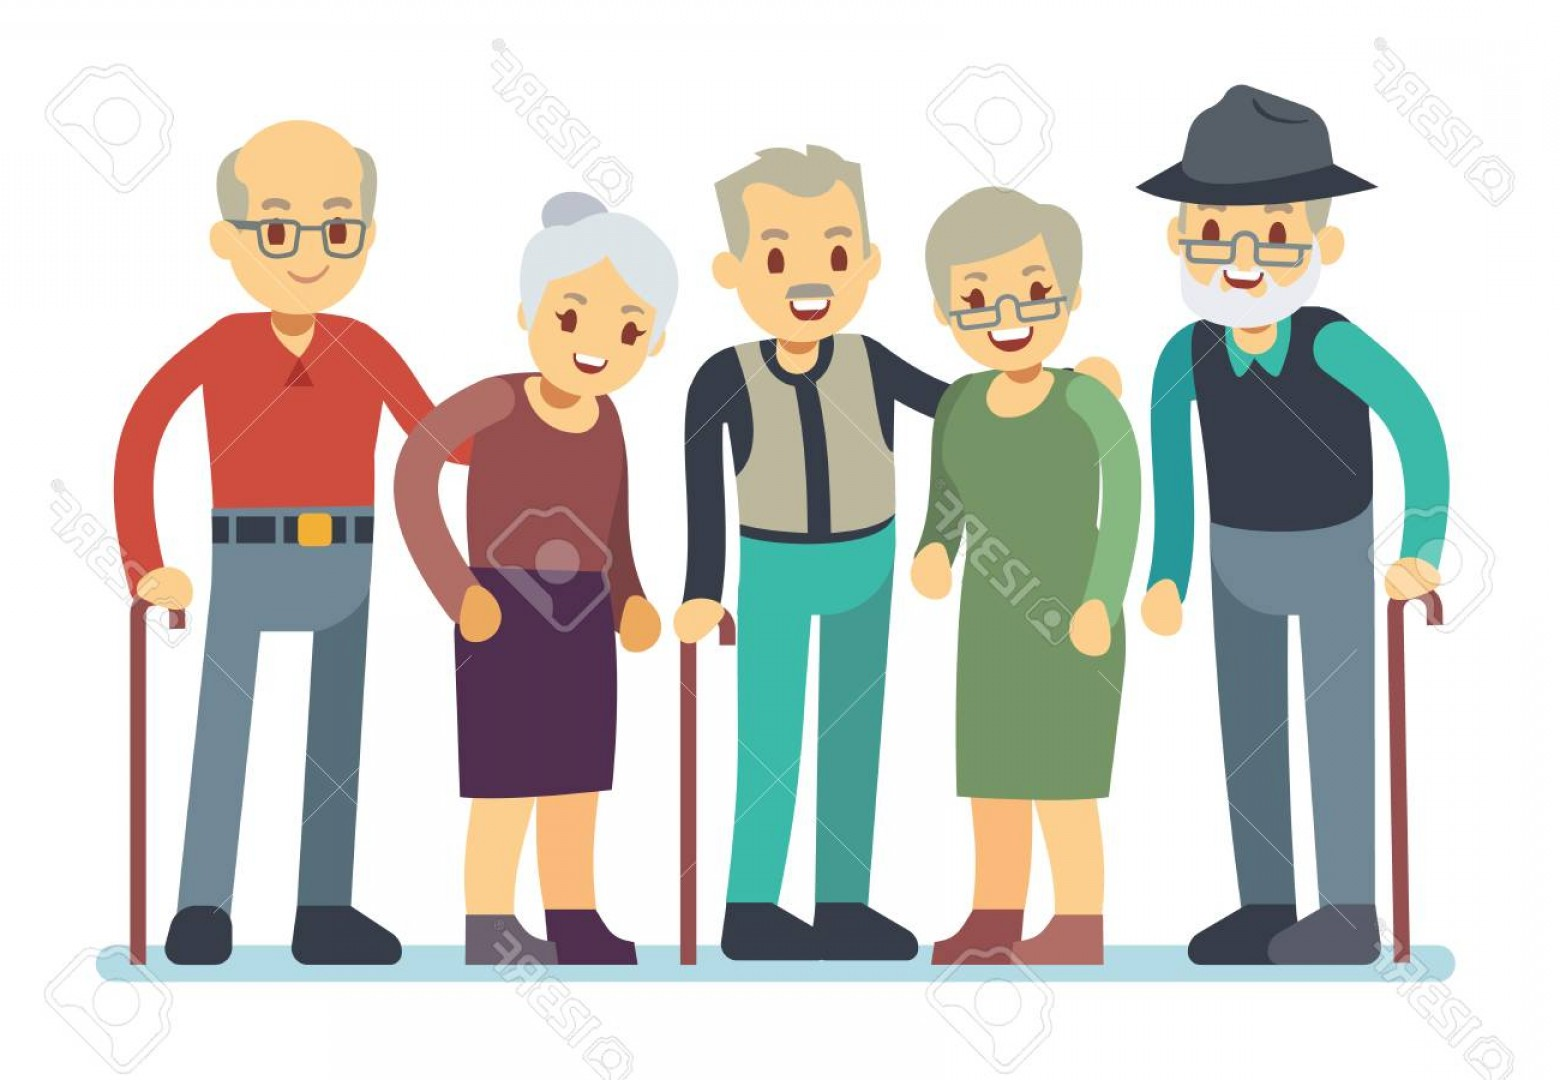 1560x1080 Photostock Vector Group Of Old People Cartoon Characters Happy